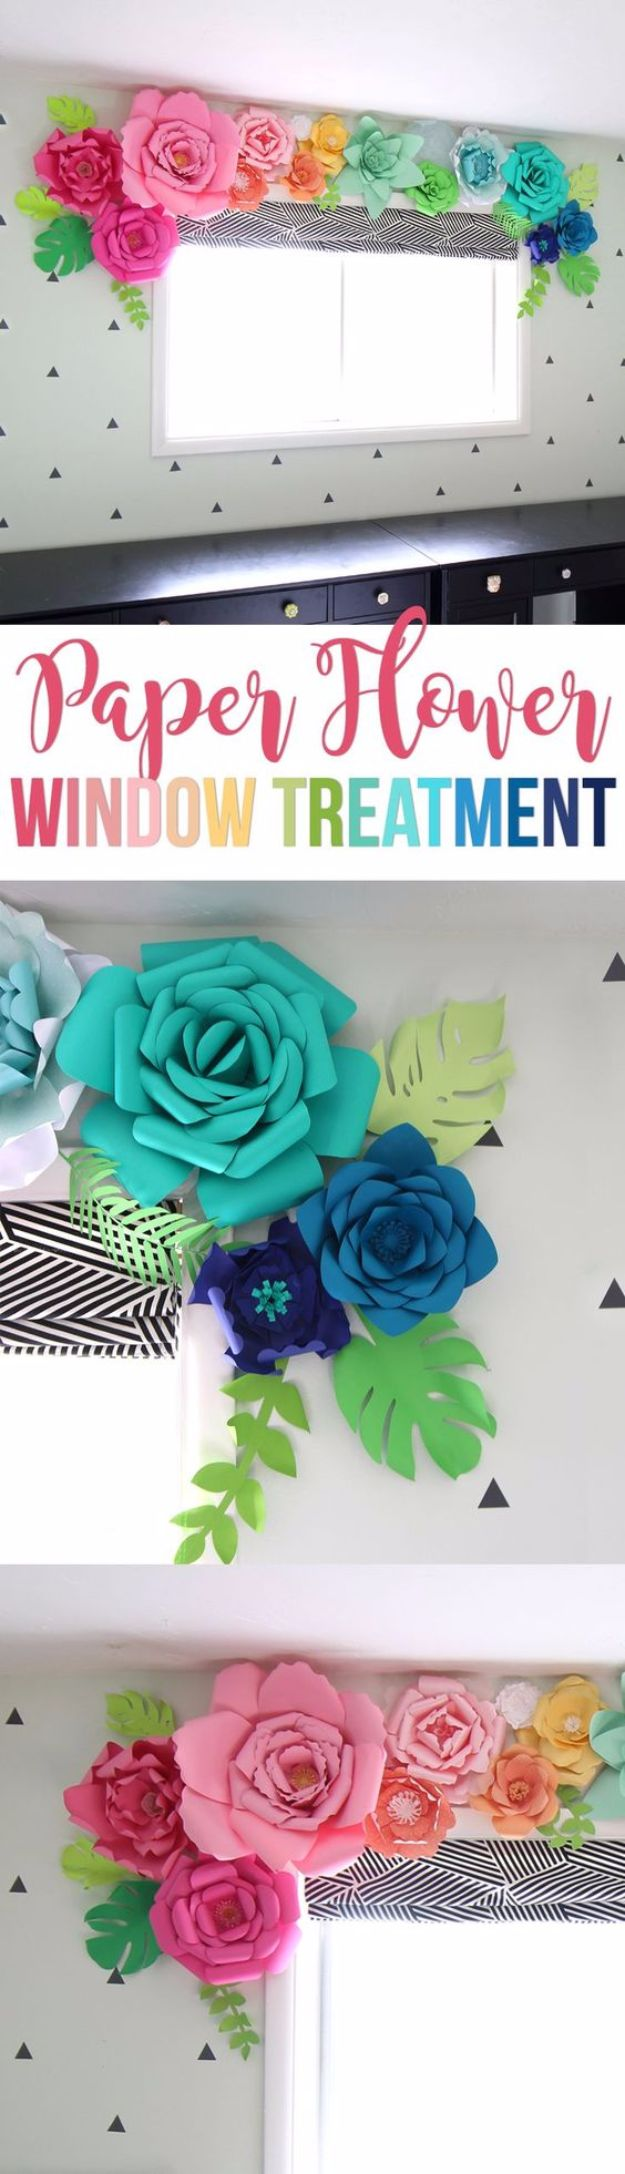 DIY Paper Flowers - Giant Paper Flower Window Treatment - How To Make A Paper Flower - Large Wedding Backdrop for Wall Decor - Easy Tissue Paper Flower Tutorial for Kids - Giant Projects for Photo Backdrops - Daisy, Roses, Bouquets, Centerpieces - Cricut Template and Step by Step Tutorial